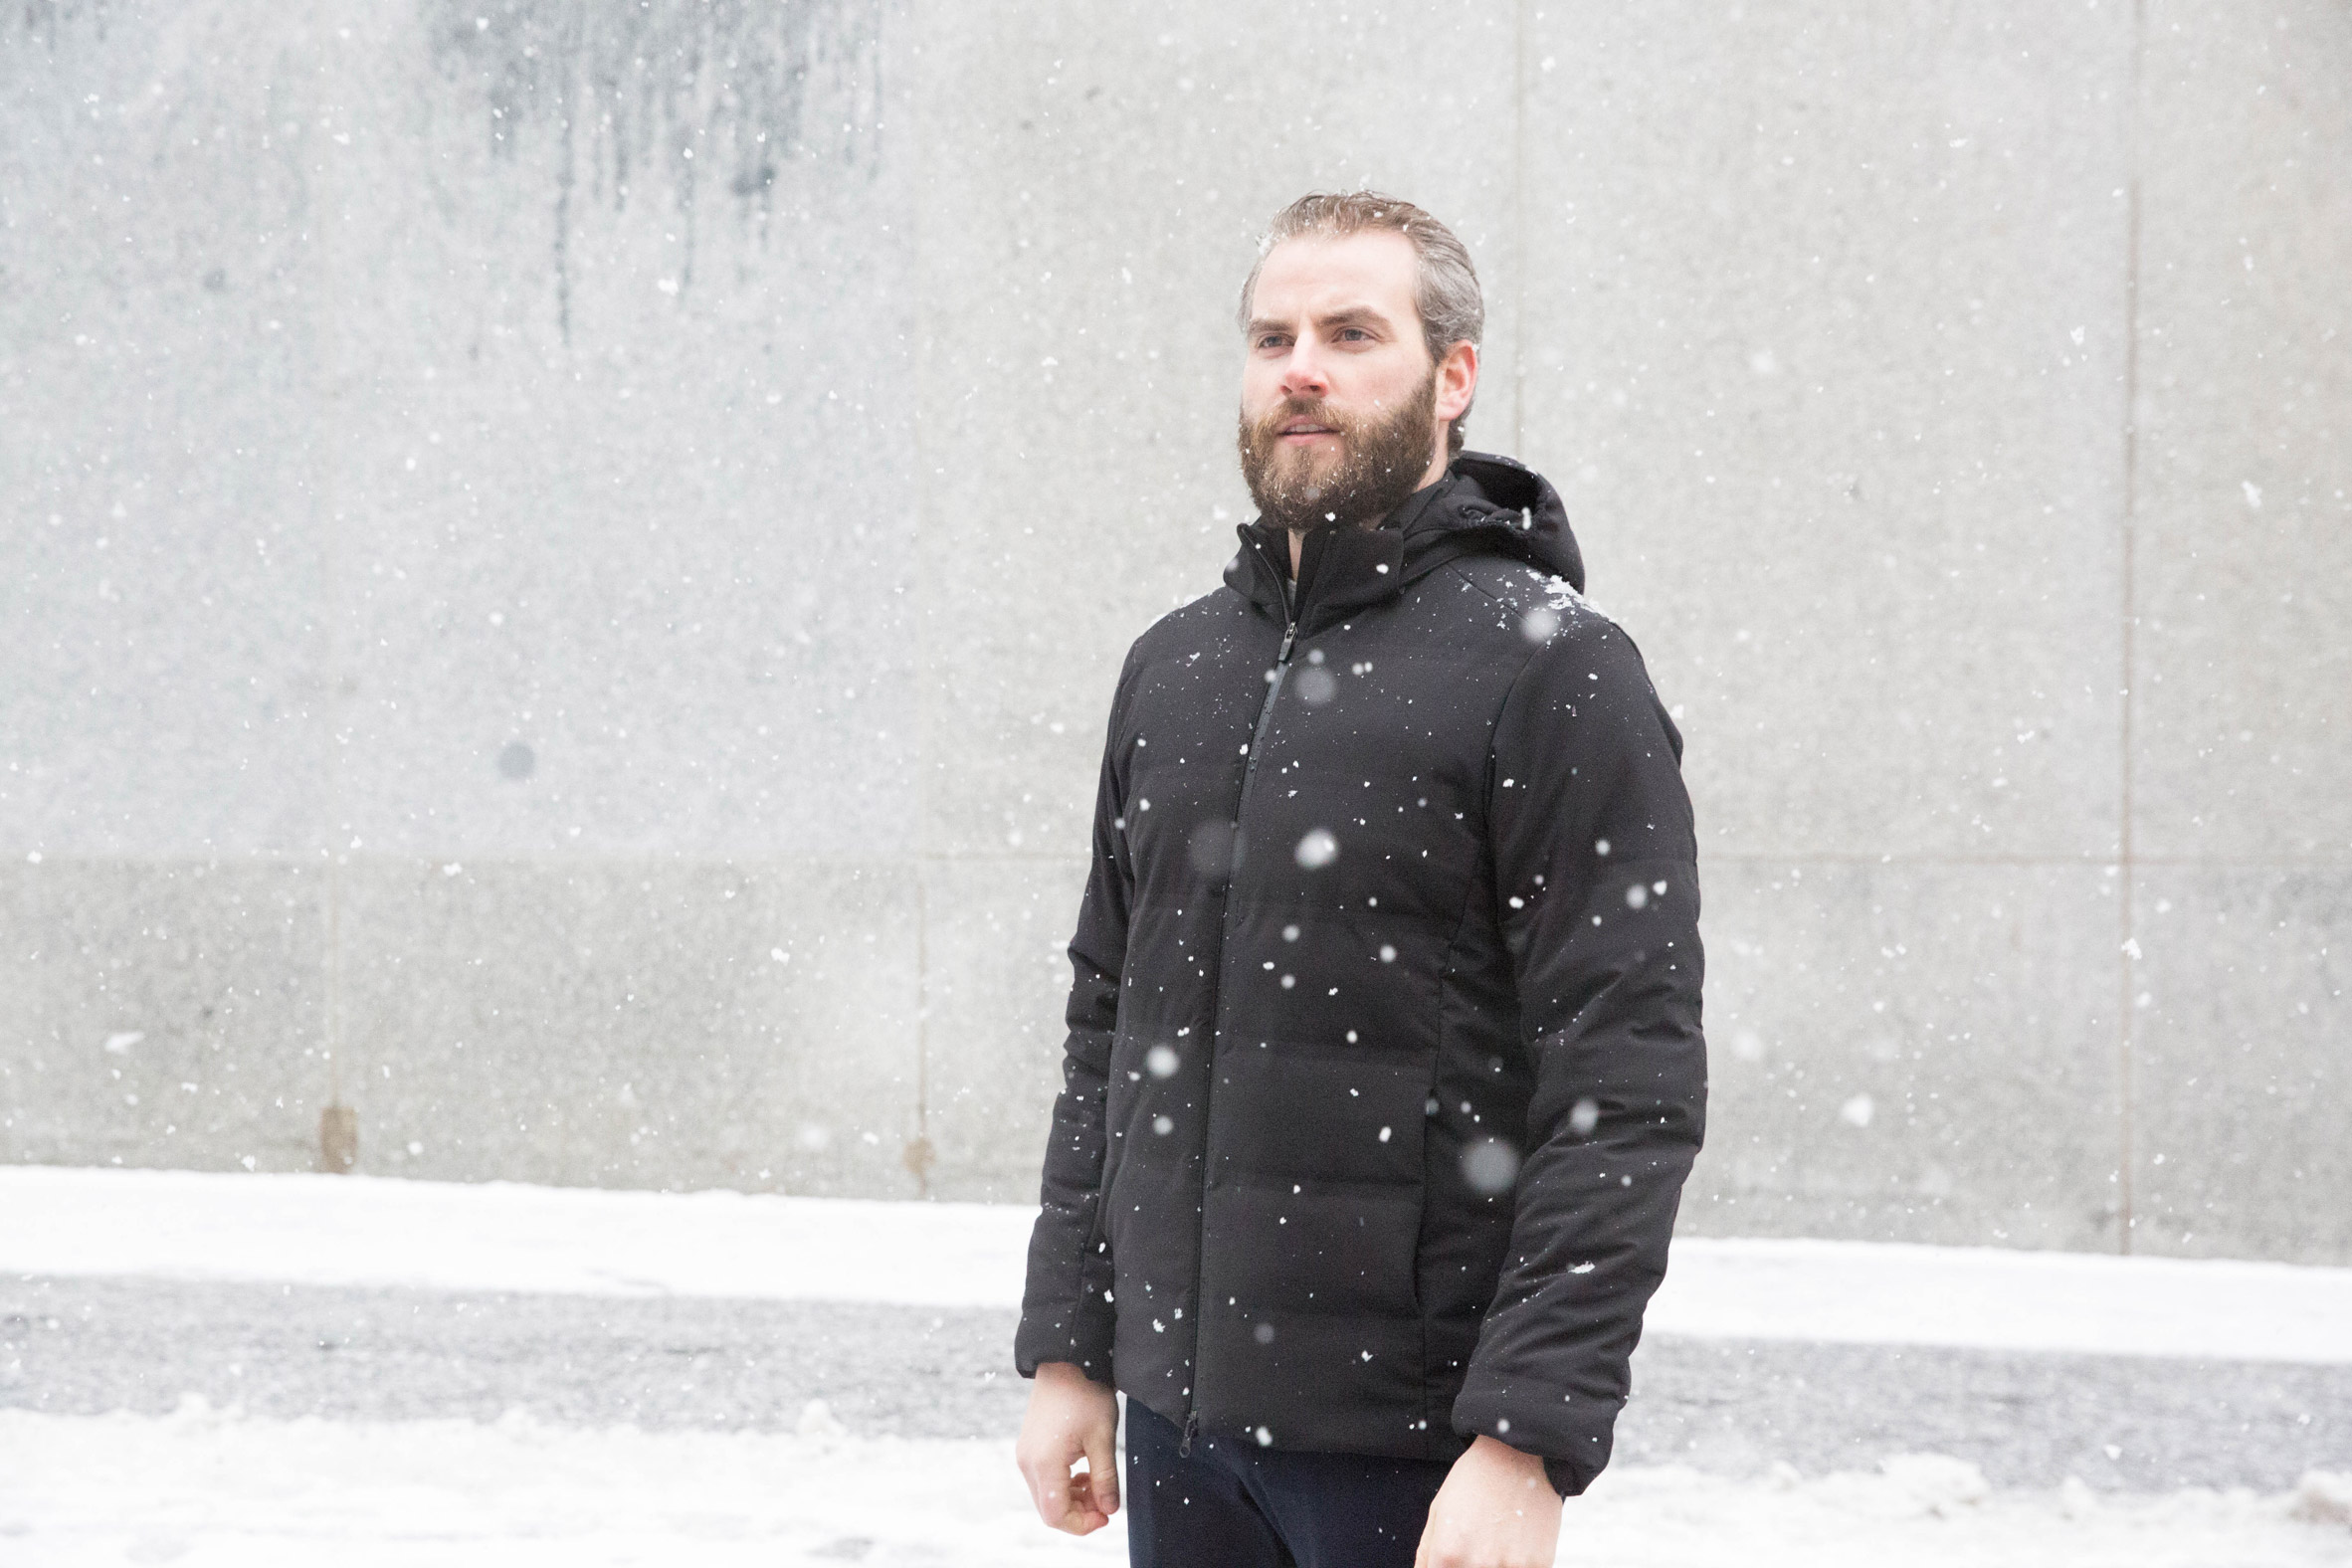 bb0eda153 Self-heating smart jacket responds to changes in temperature